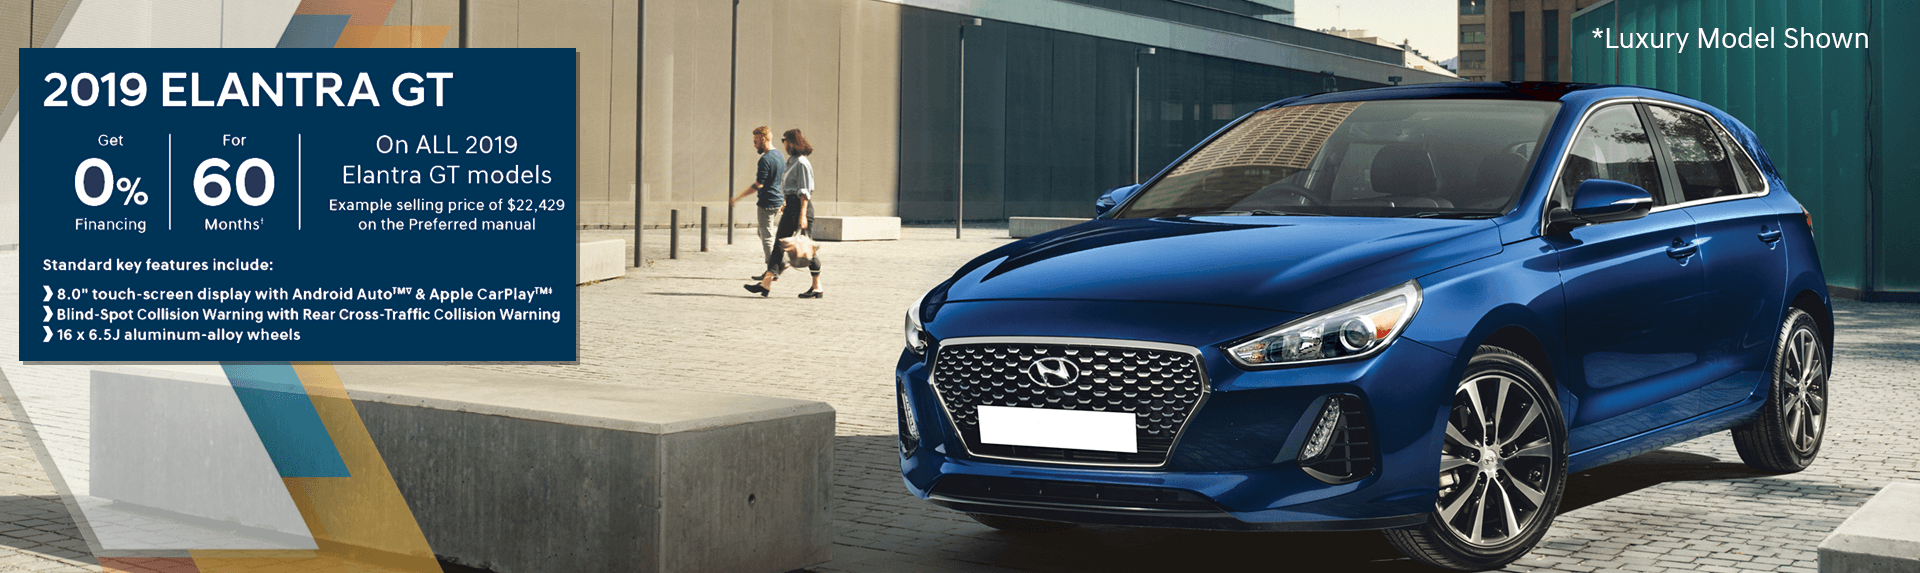 Lease The 2019 Elantra GT